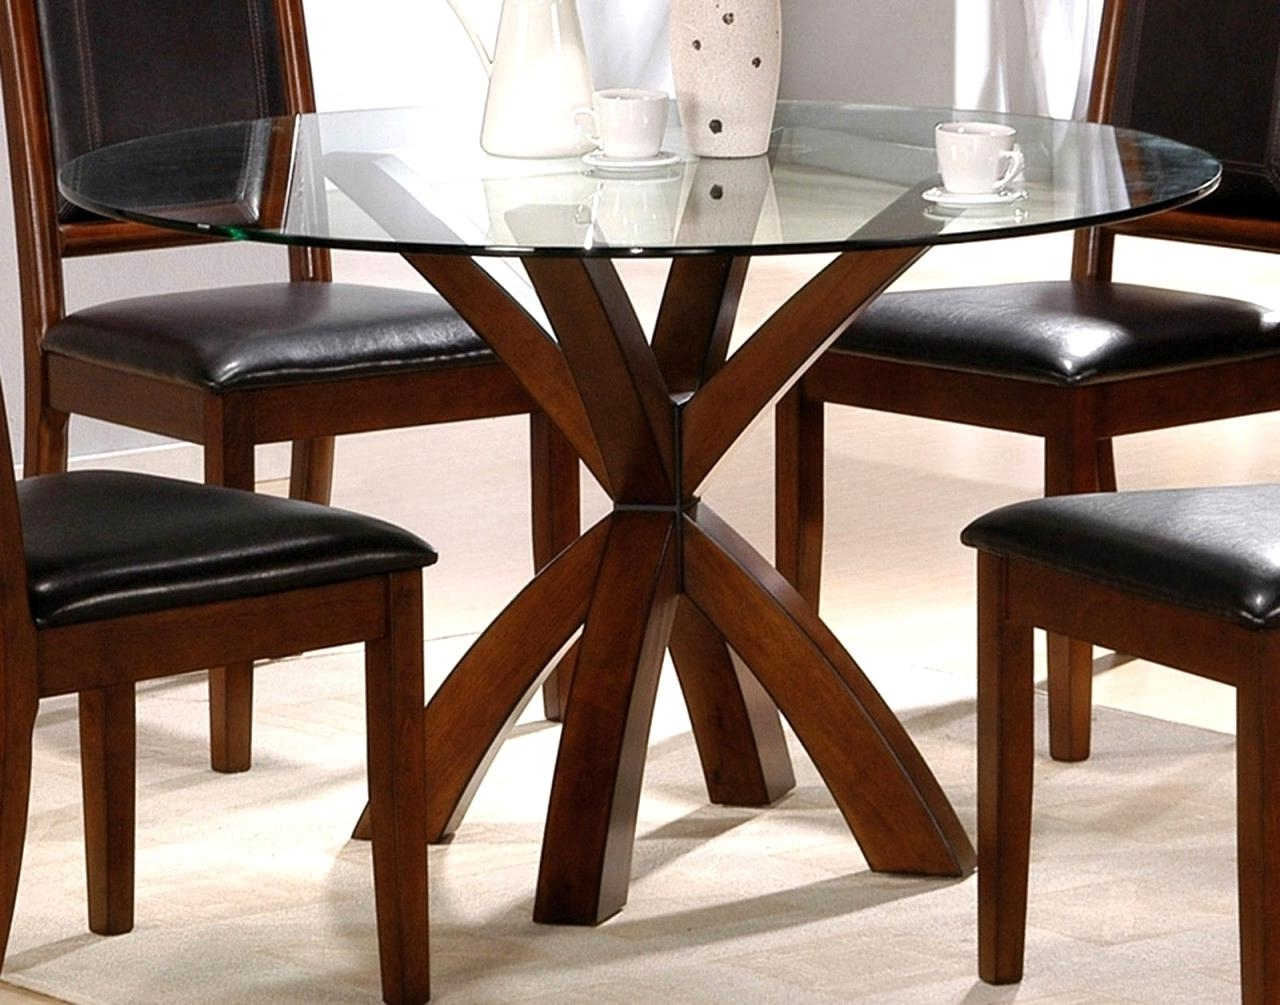 Incredible Oak Base Dining Table Simple Round Glass Top Dining With Popular Round Glass And Oak Dining Tables (View 11 of 25)